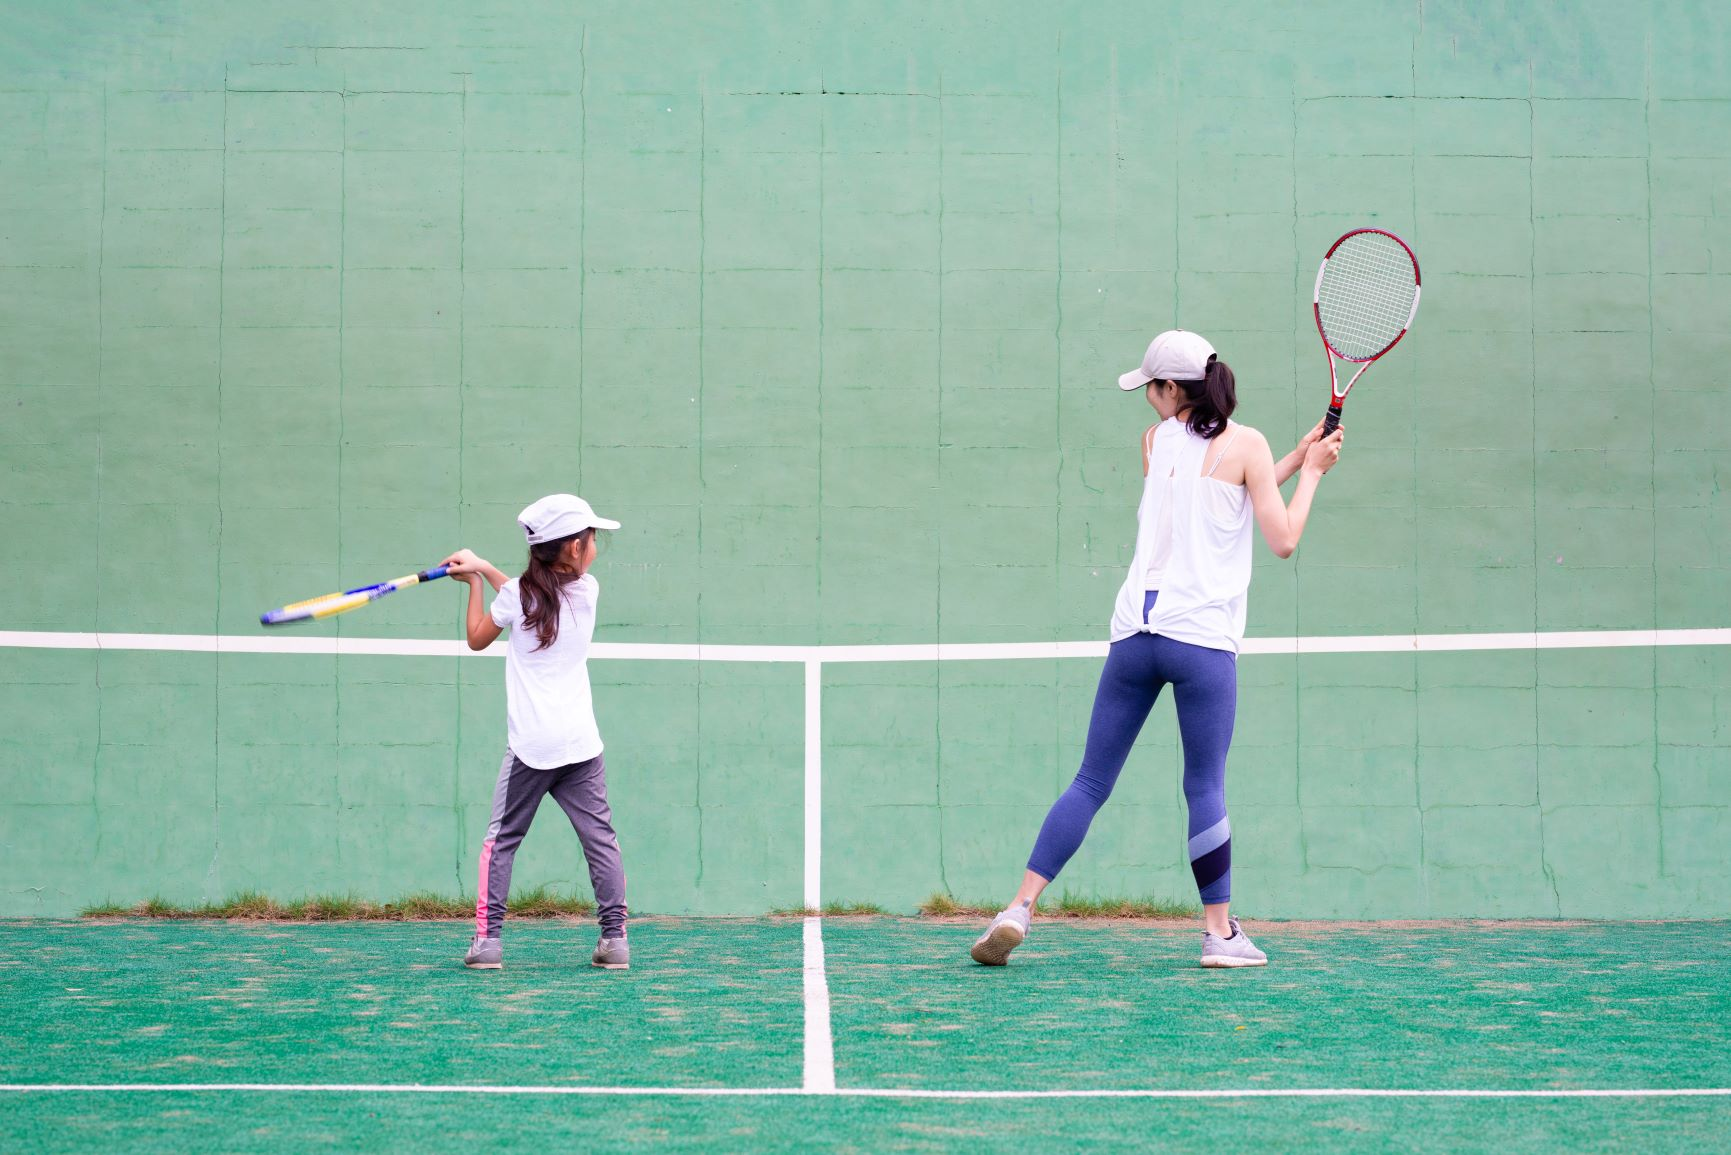 Mom and daughter playing tennis against the wall